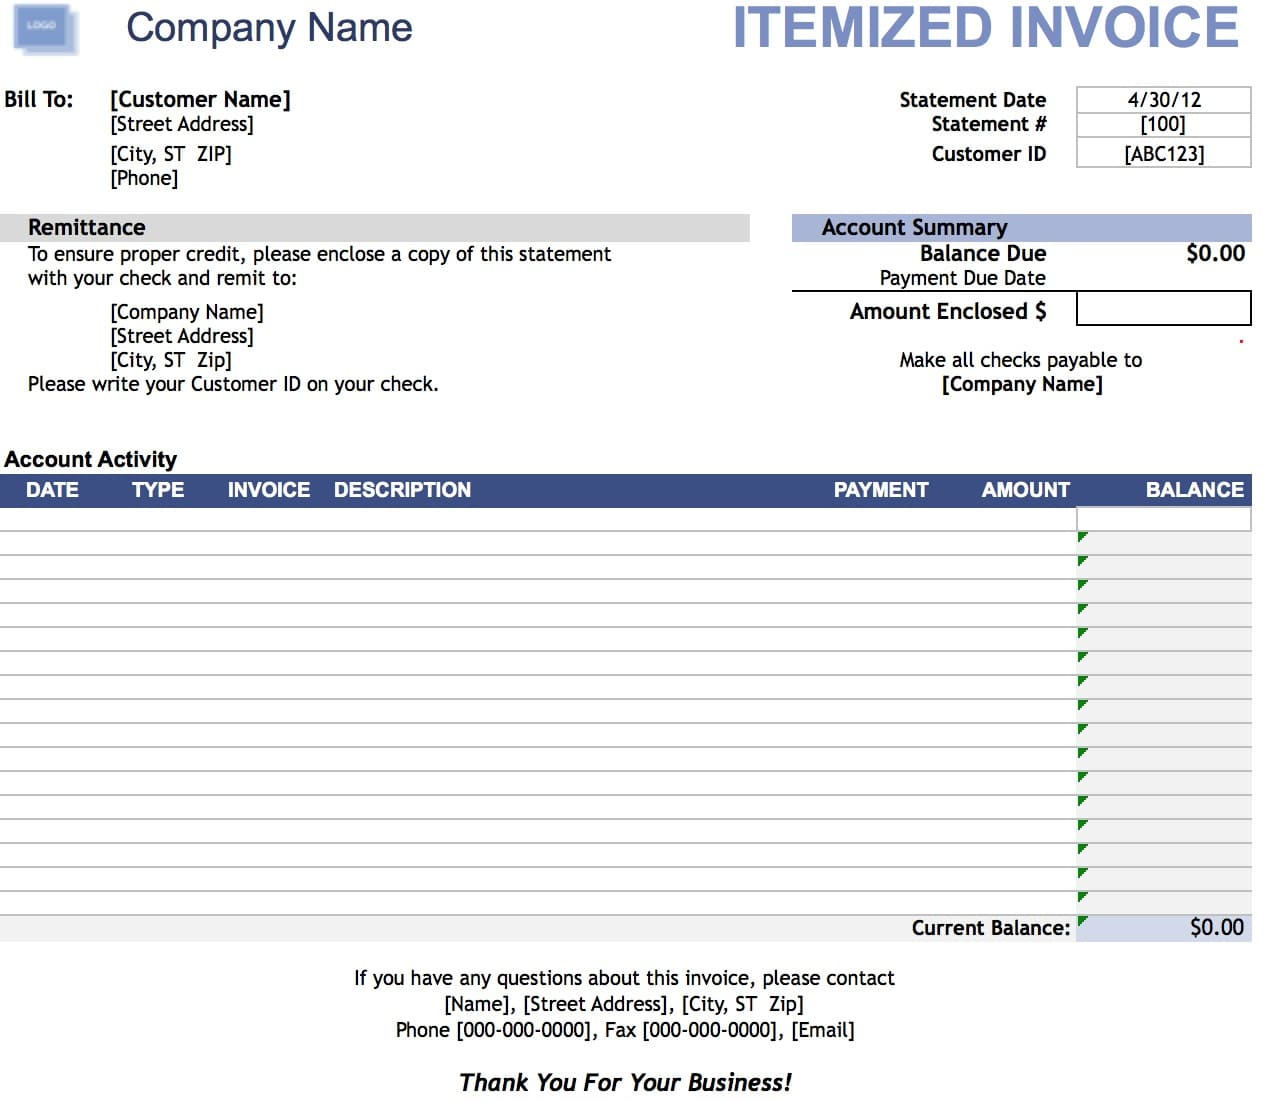 Free Itemized Invoice Template Excel PDF Word Doc - Invoices in word for service business